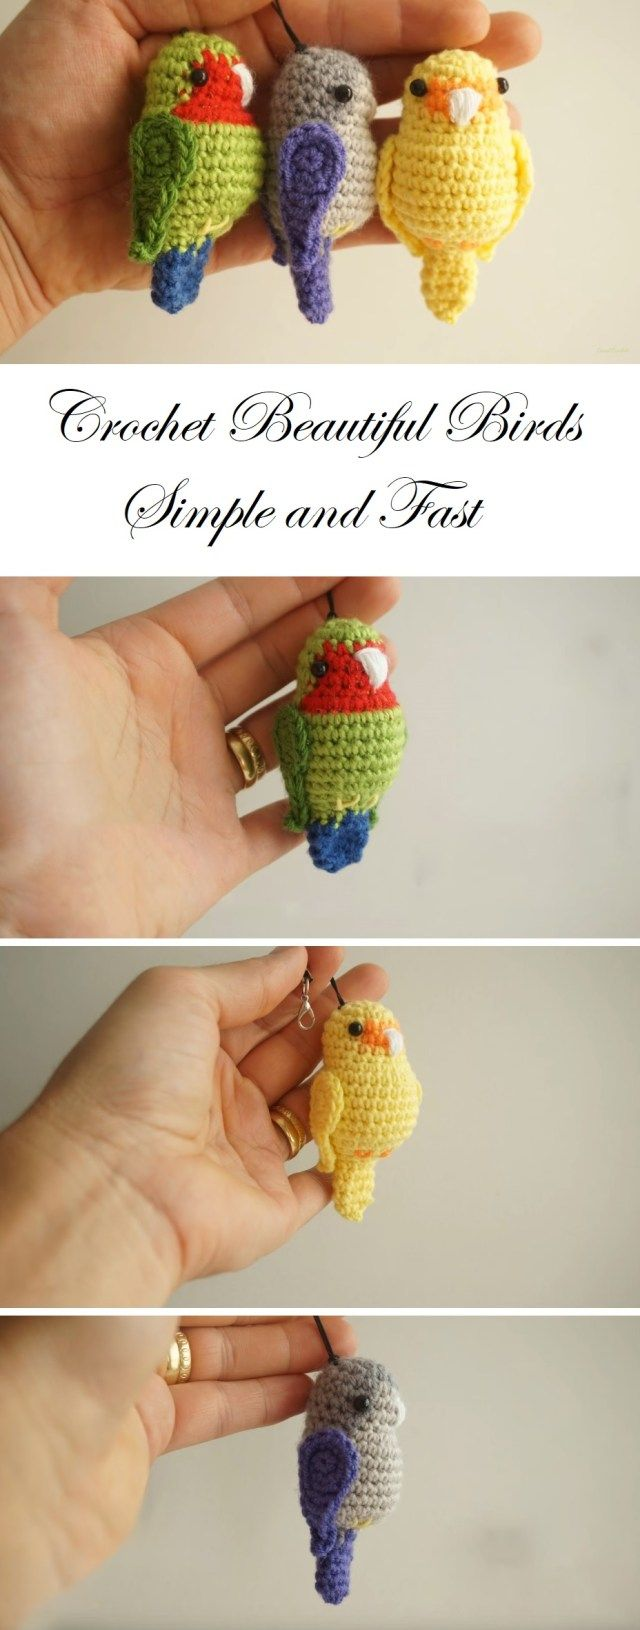 Cute Birds Crochet Tutorial and Pattern